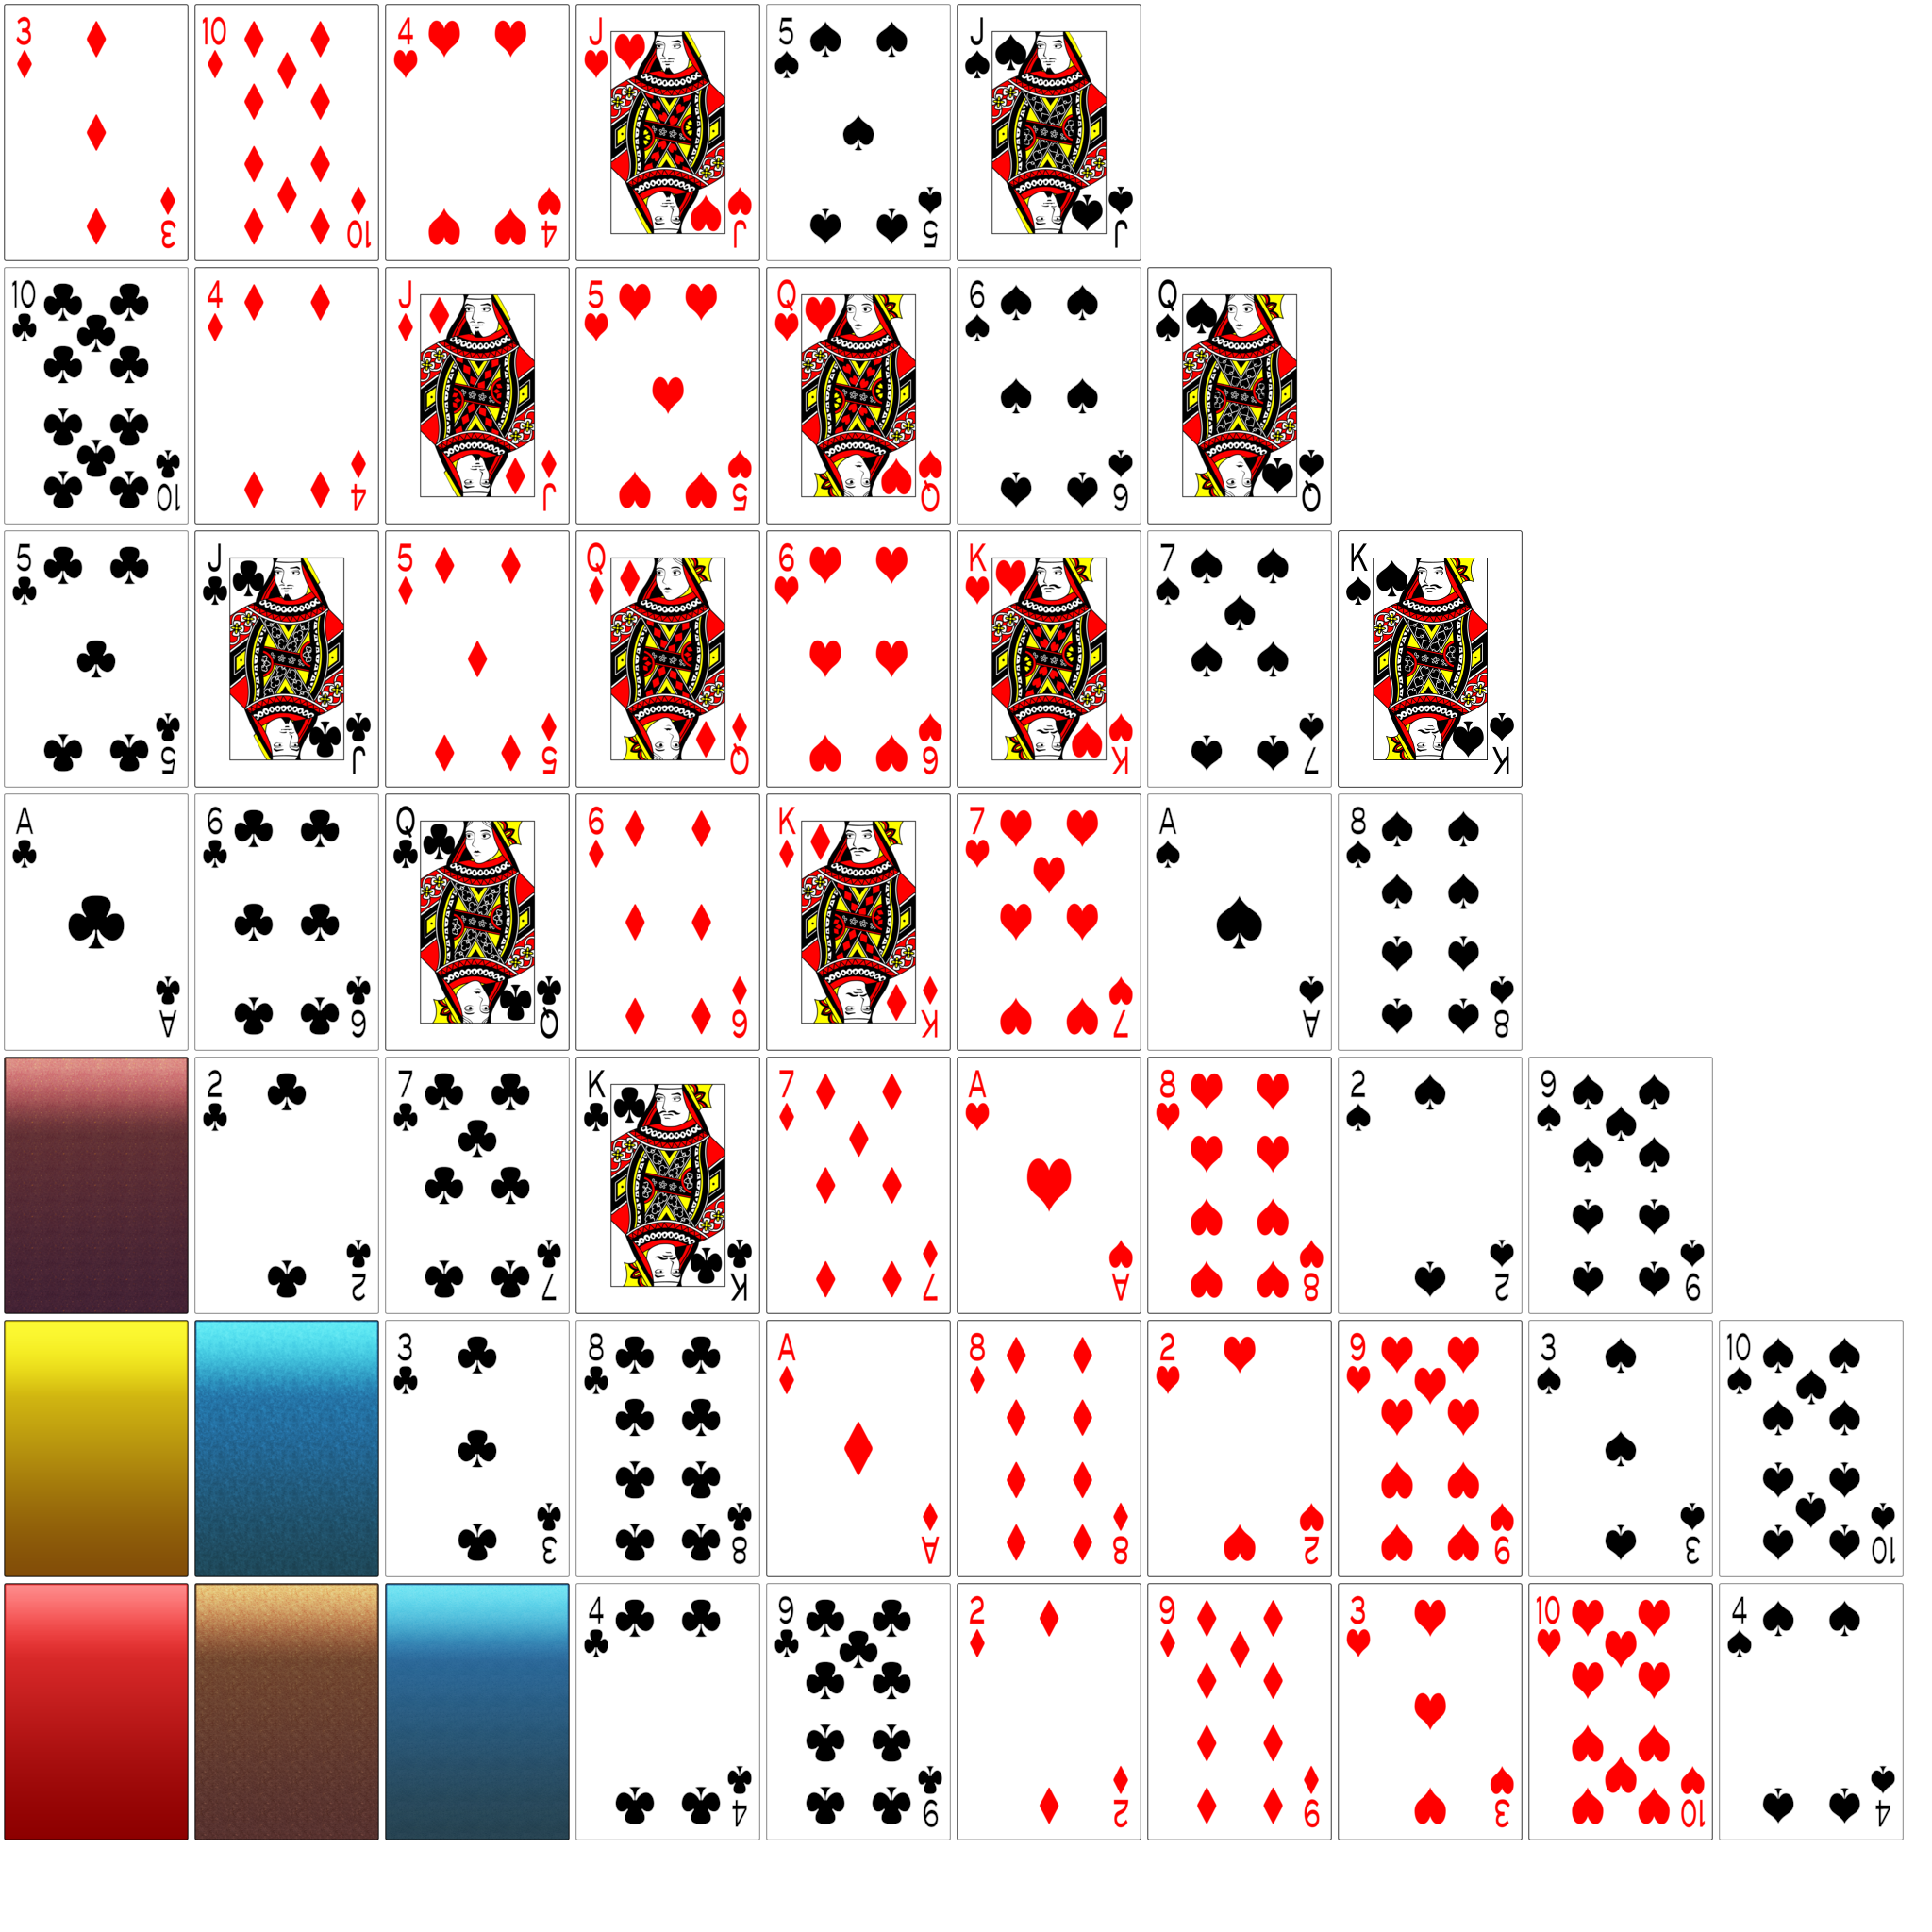 52 playing cards png. A simple card game